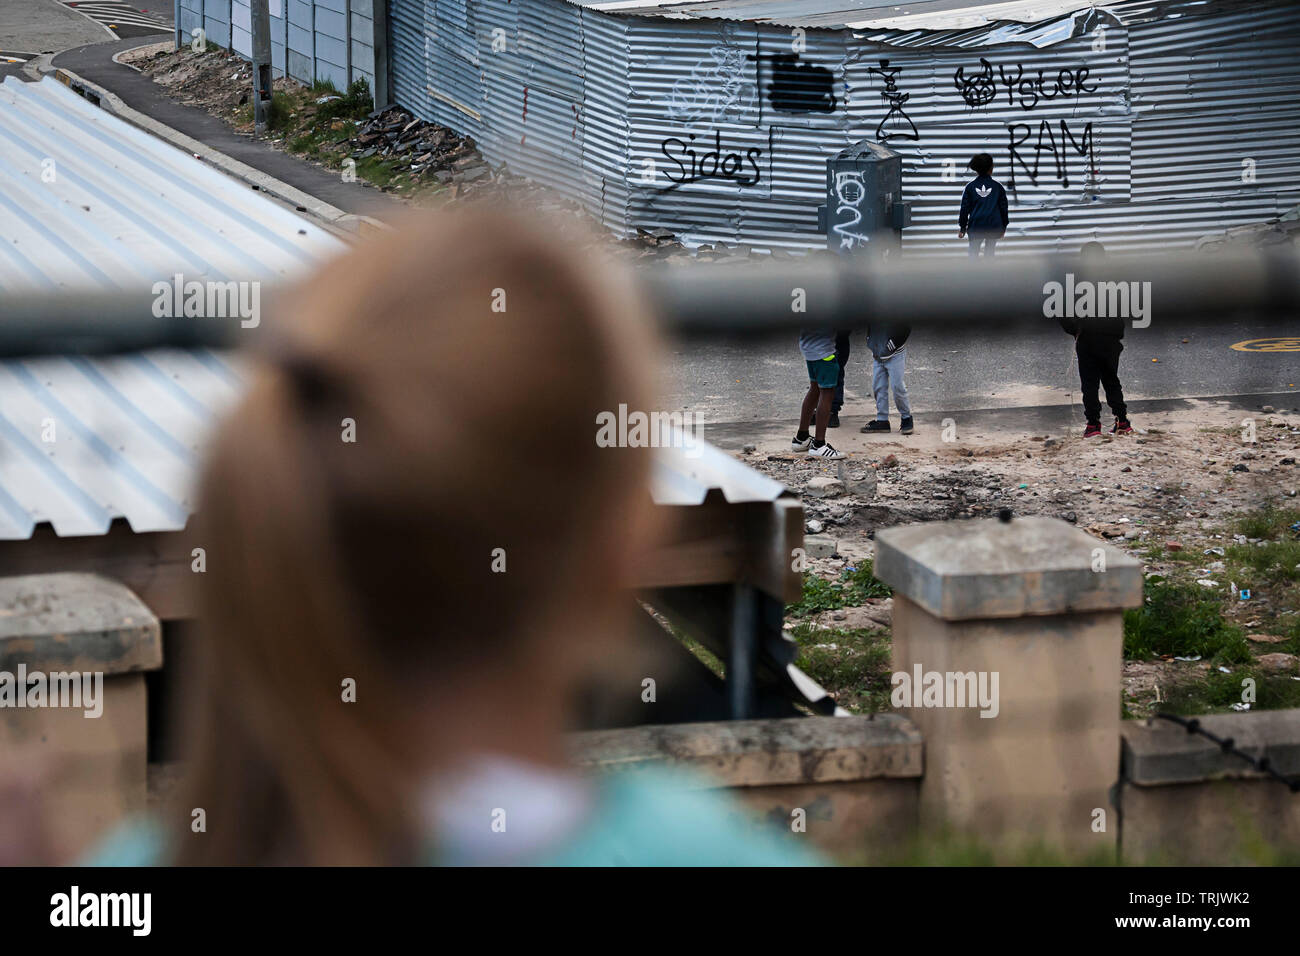 Young girl looking at children playing in the street in a township in Africa from across a fence. - Stock Image